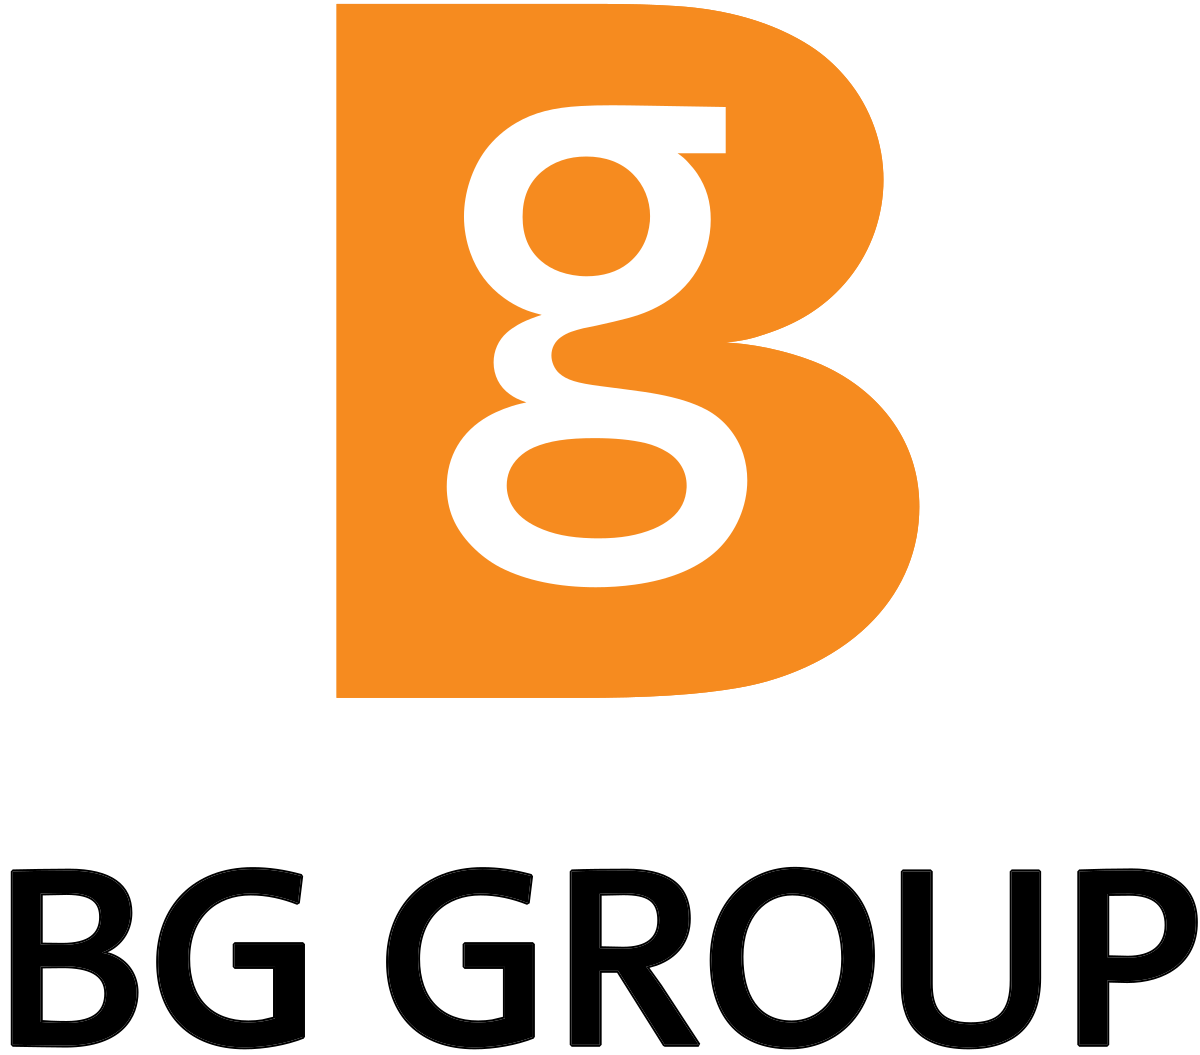 BG Group (now owned by Shell)